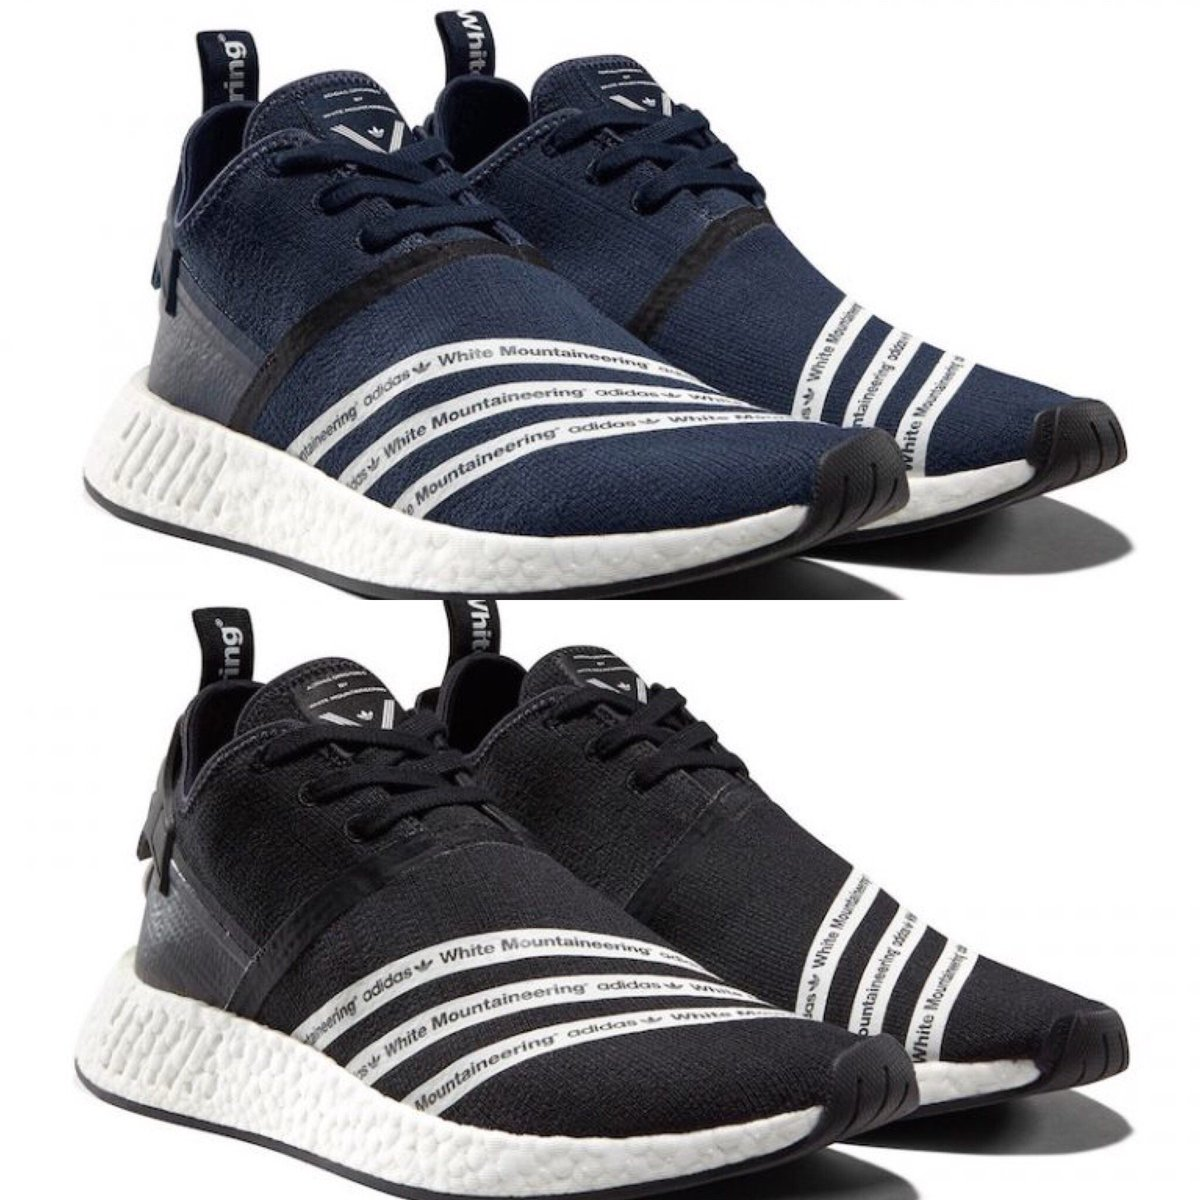 adidas Originals Nmd R1 Trail W BB3692 everysize.com